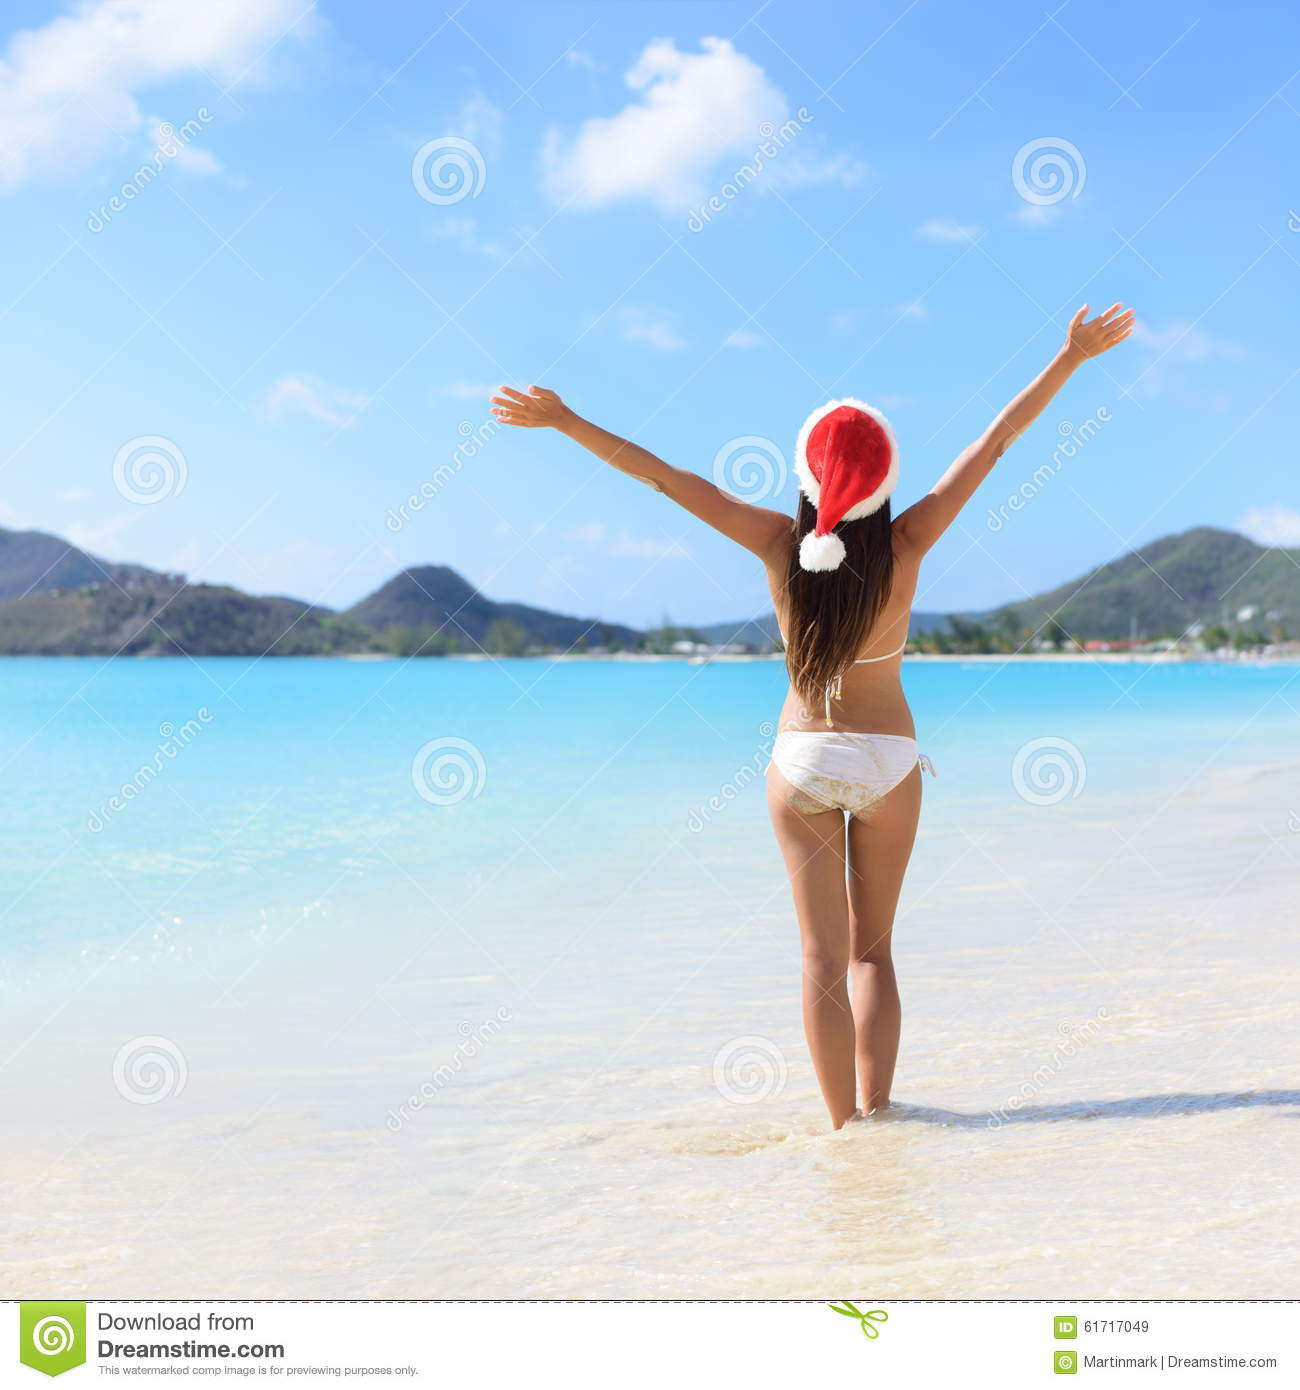 f1dddb4635b Woman standing in water with arms outstretched at beach. Rear view of female  is wearing Santa hat and bikini. Carefree tourist is enjoying Christmas ...